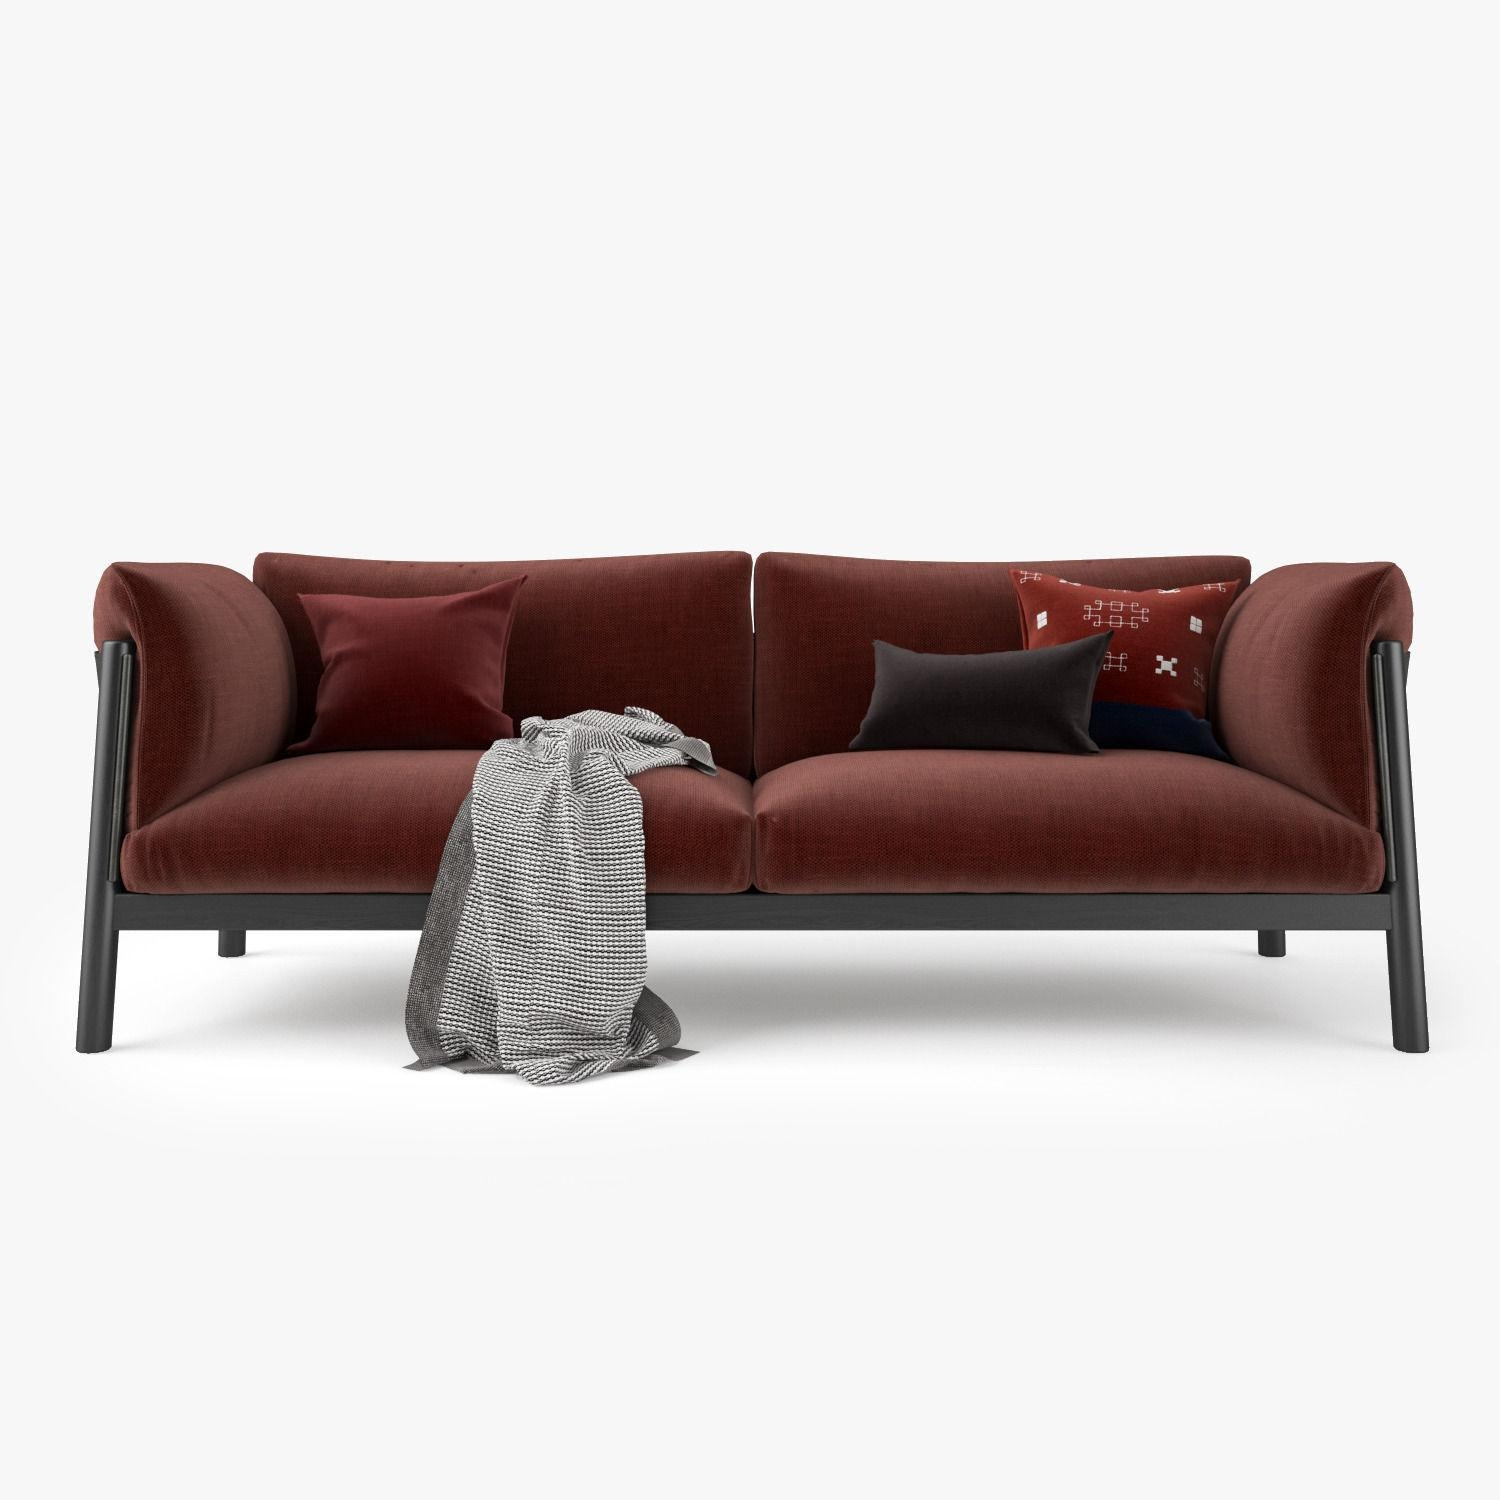 De Padova Yak Two Seater Sofa 3D Model Max Obj Fbx Mtl With Regard To Two Seater Sofas (Image 7 of 20)